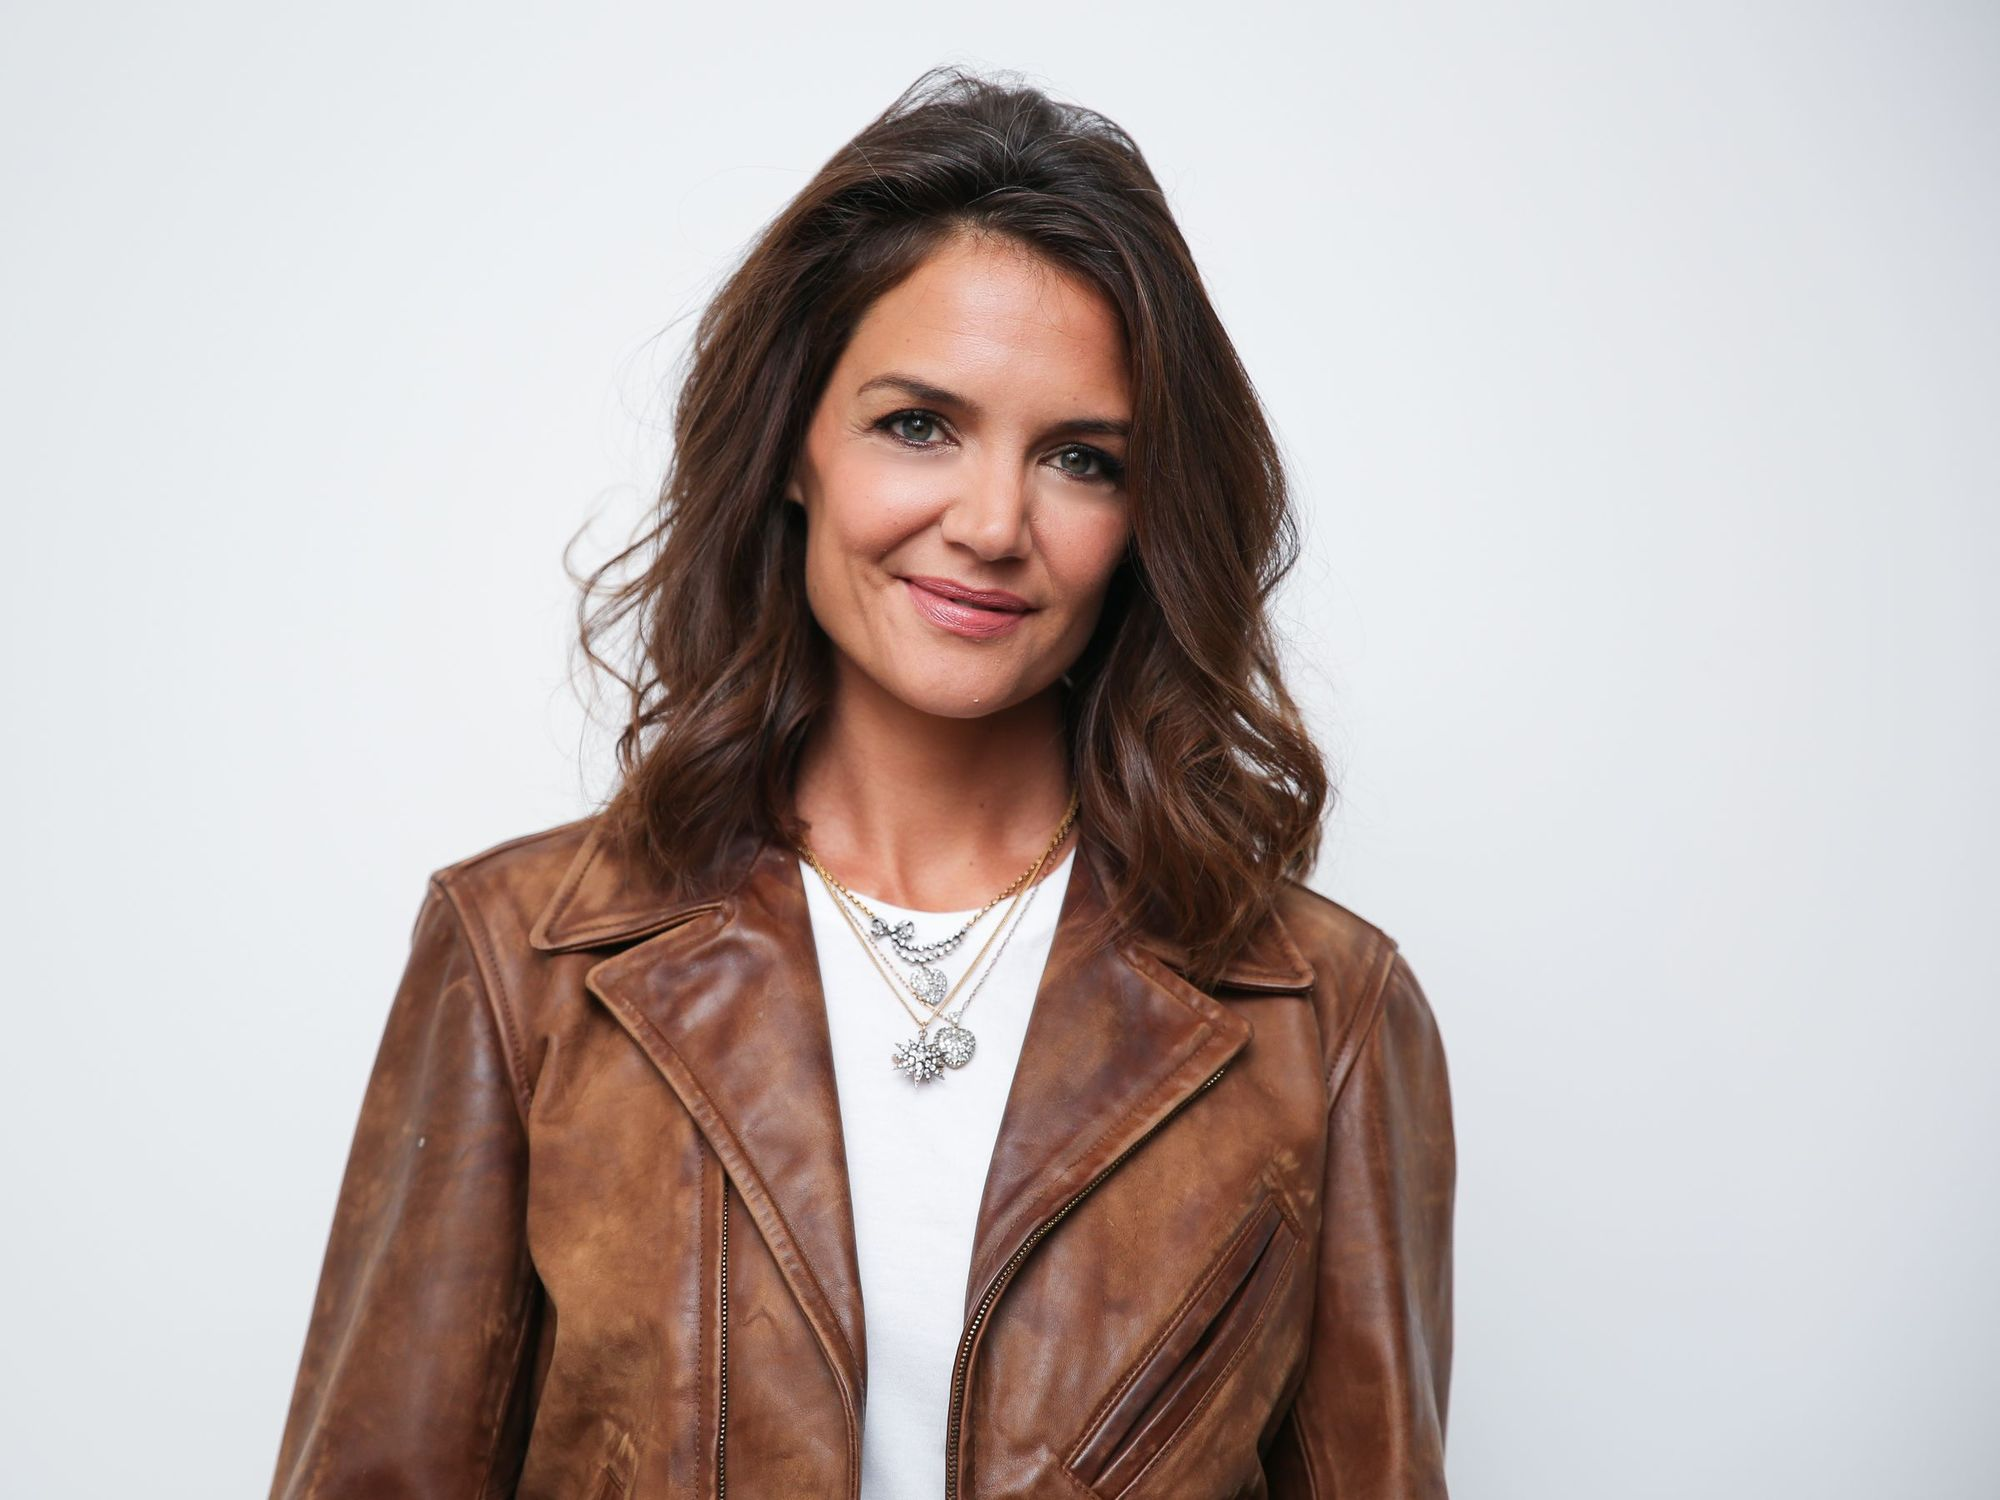 Hair Today Gone Tomorrow See Katie Holmes New Pixie Cut